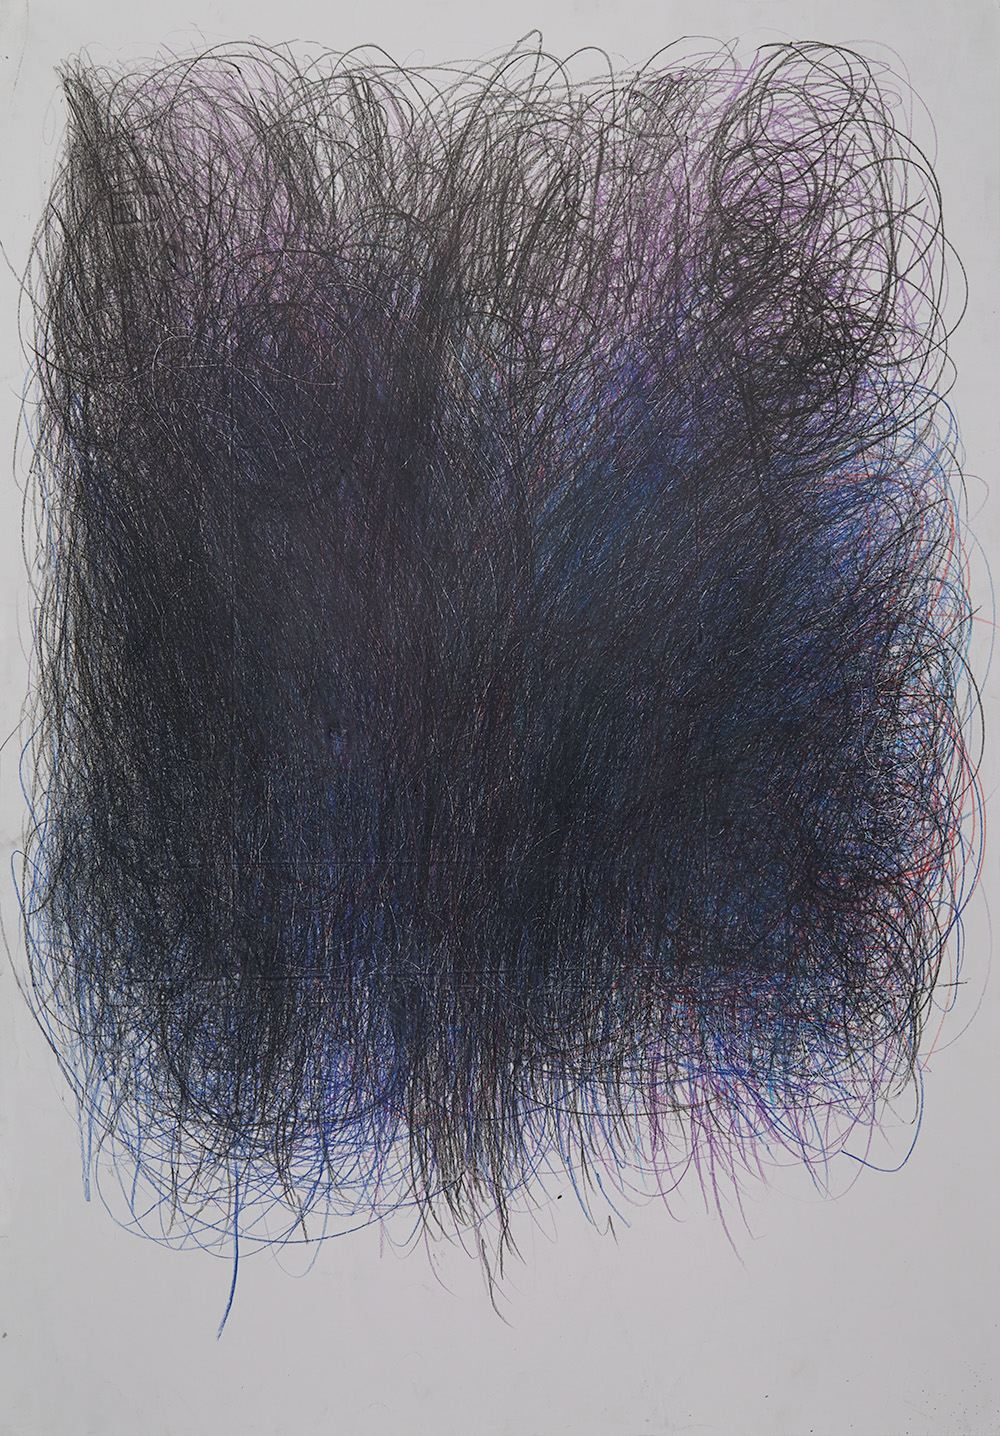 Éric Derochette  Untitled  , 2012 Crayon on paper 39.37 x 27.56 inches 100 x 70 cm DERO 1